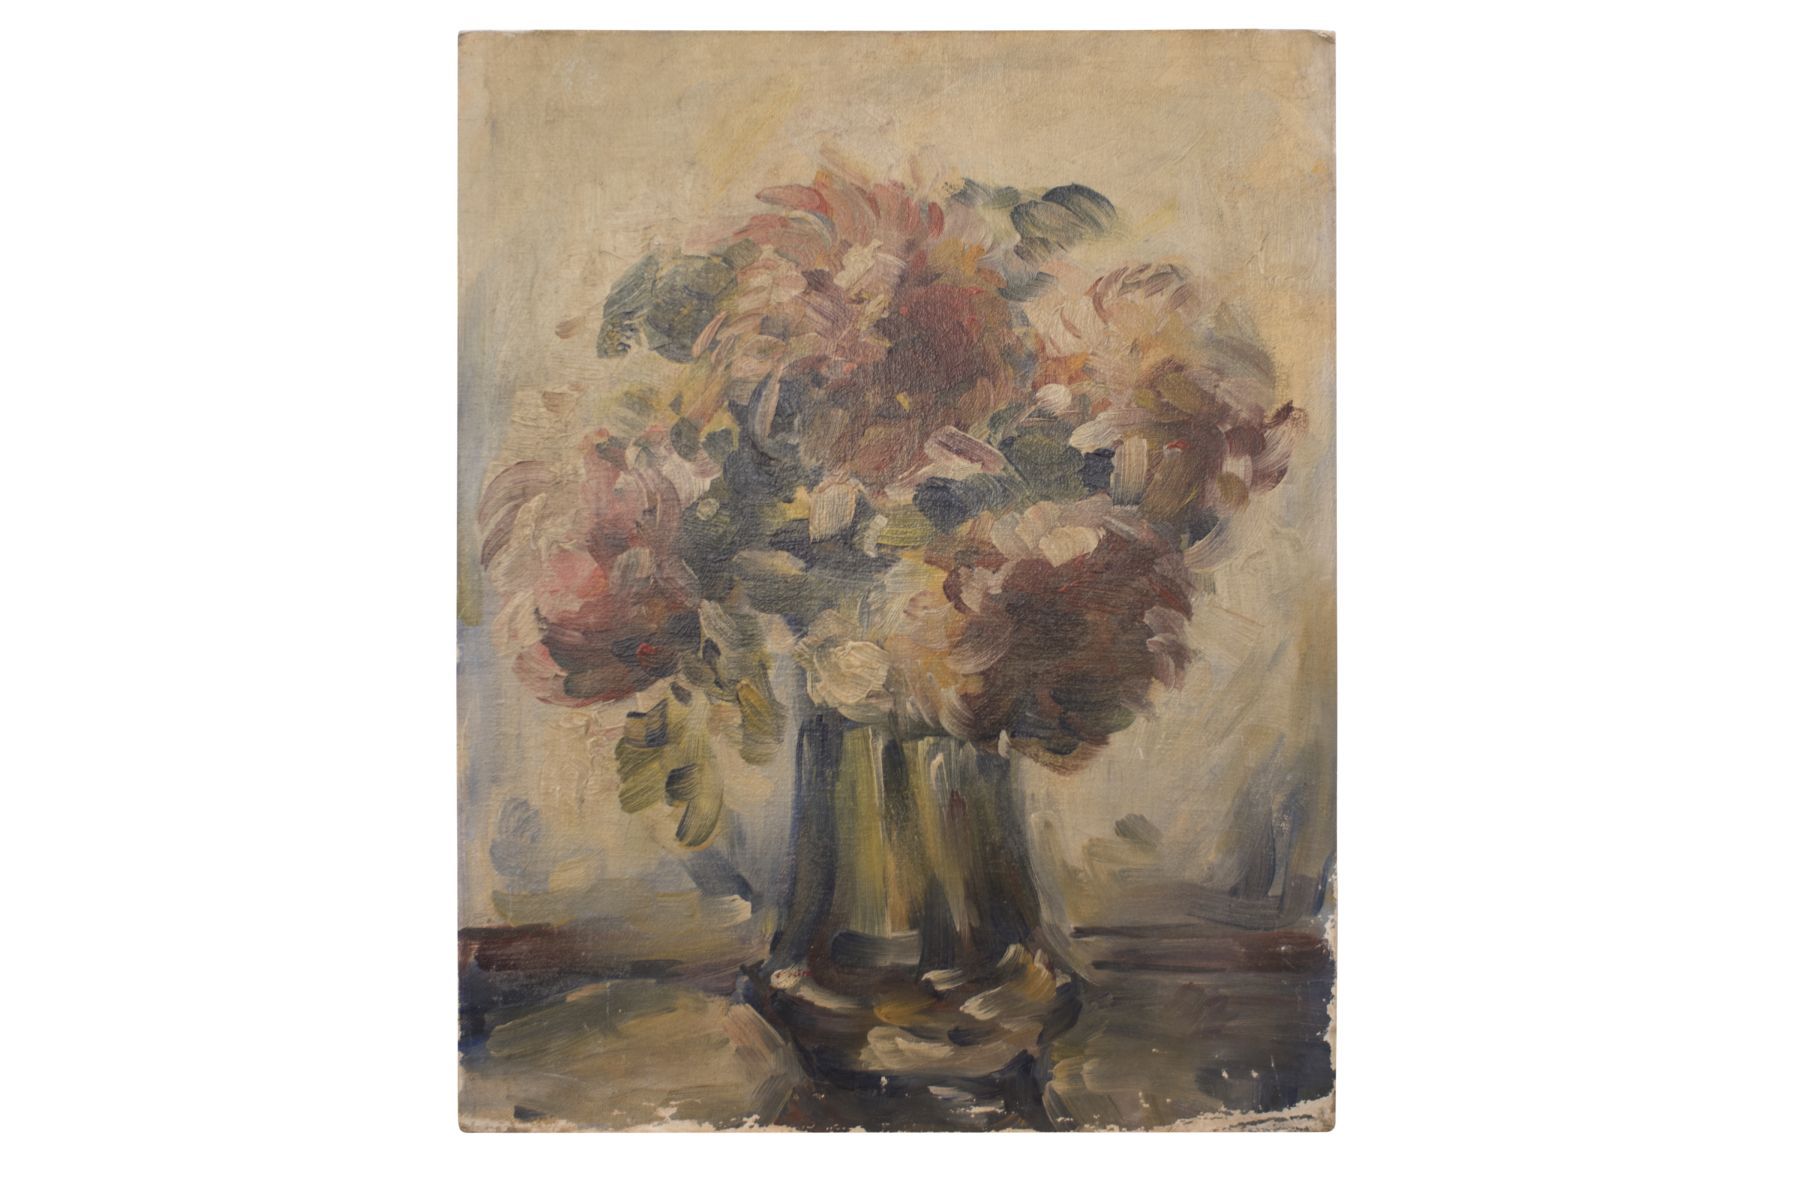 "#40 Painter around 1920 ""Flowers in vase"" 